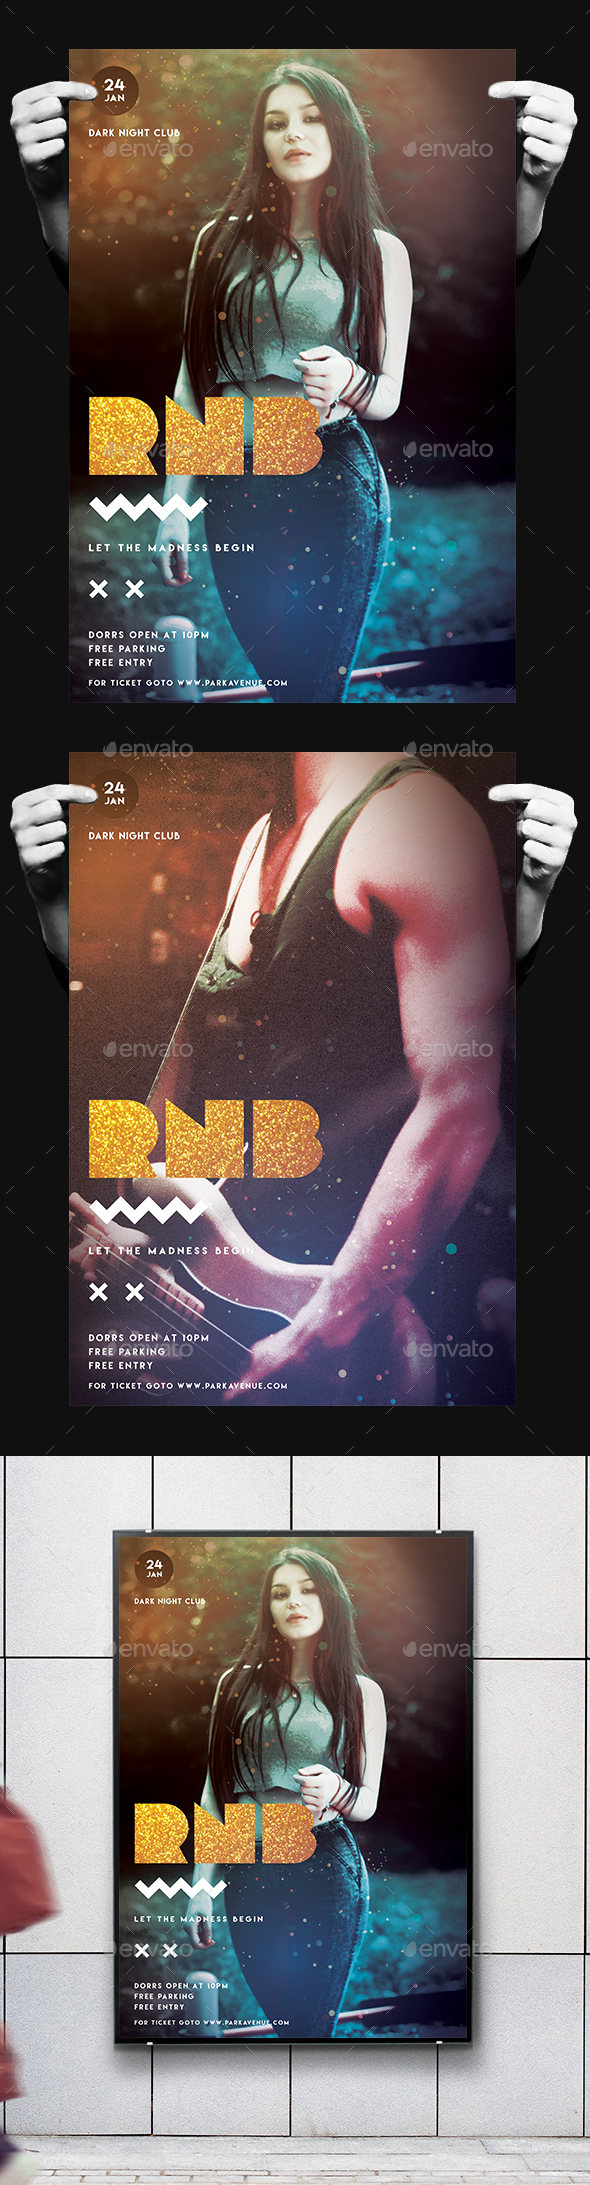 RNB Sounds Flyer/Poster - Clubs & Parties Events